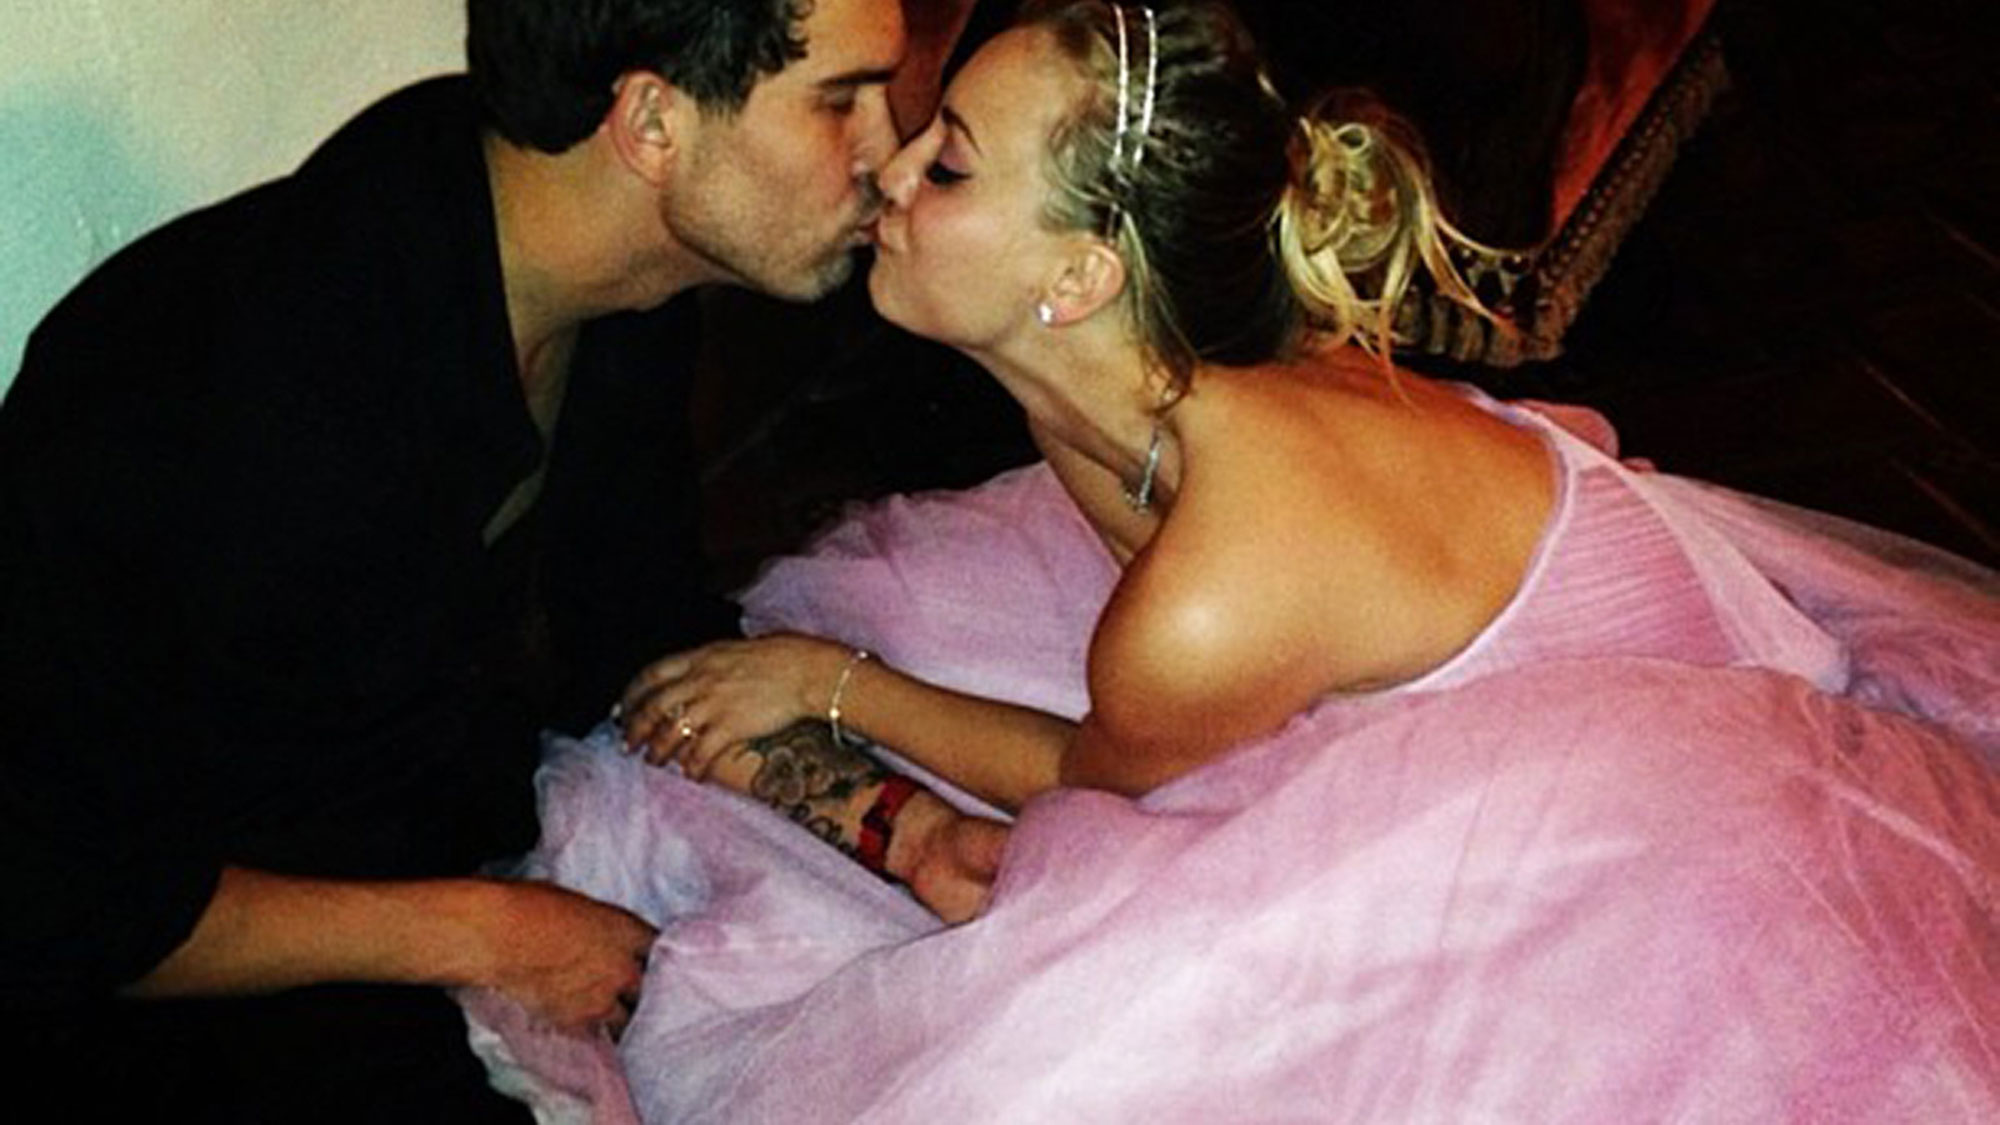 Every Star Who Got Married on New Year's Eve - The Big Bang Theory star first walked down the aisle on December 31, 2013, to marry Sweeting in a romantic ceremony at the Hummingbird Ranch in Southern California. Her costar and ex-boyfriend, Johnny Galecki , attended the nuptials, as did Bachelorette alum Ali Fedotowsky .